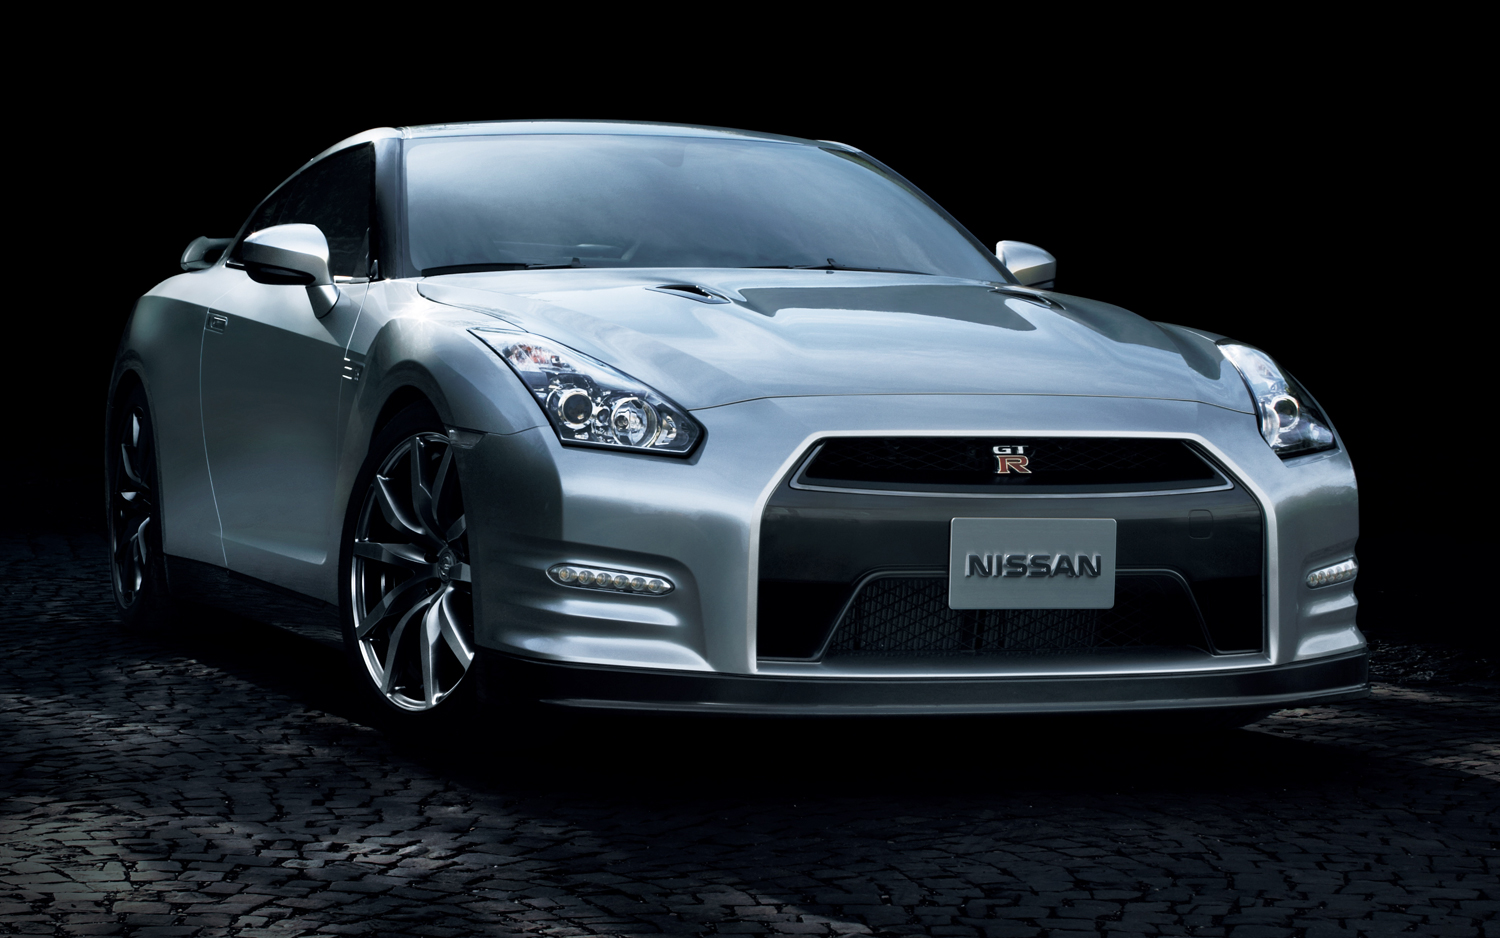 2014 Nissan GT-R | New cars reviews